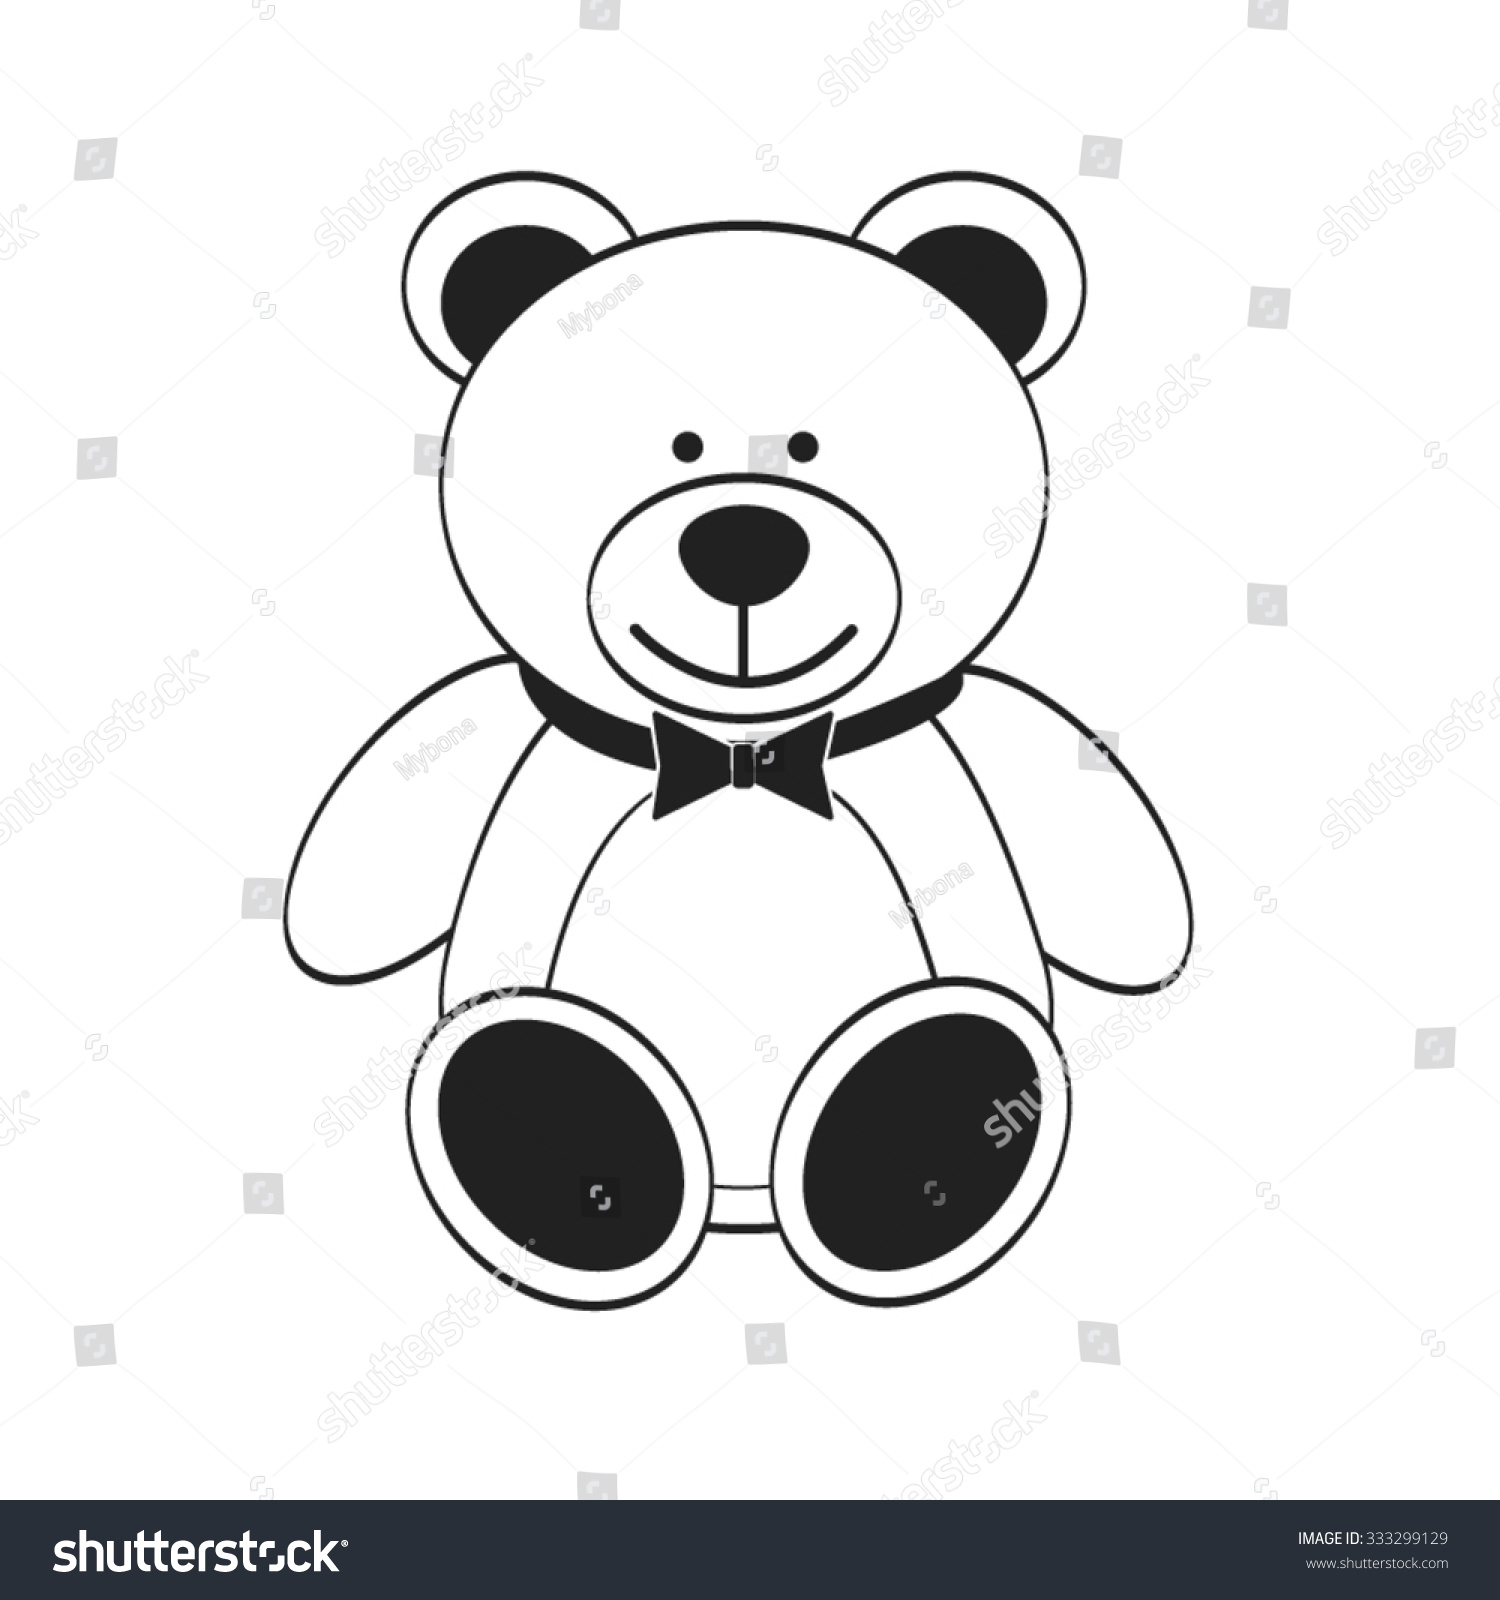 Black White Teddy Bear Isolate On Stock Vector 333299129 ...